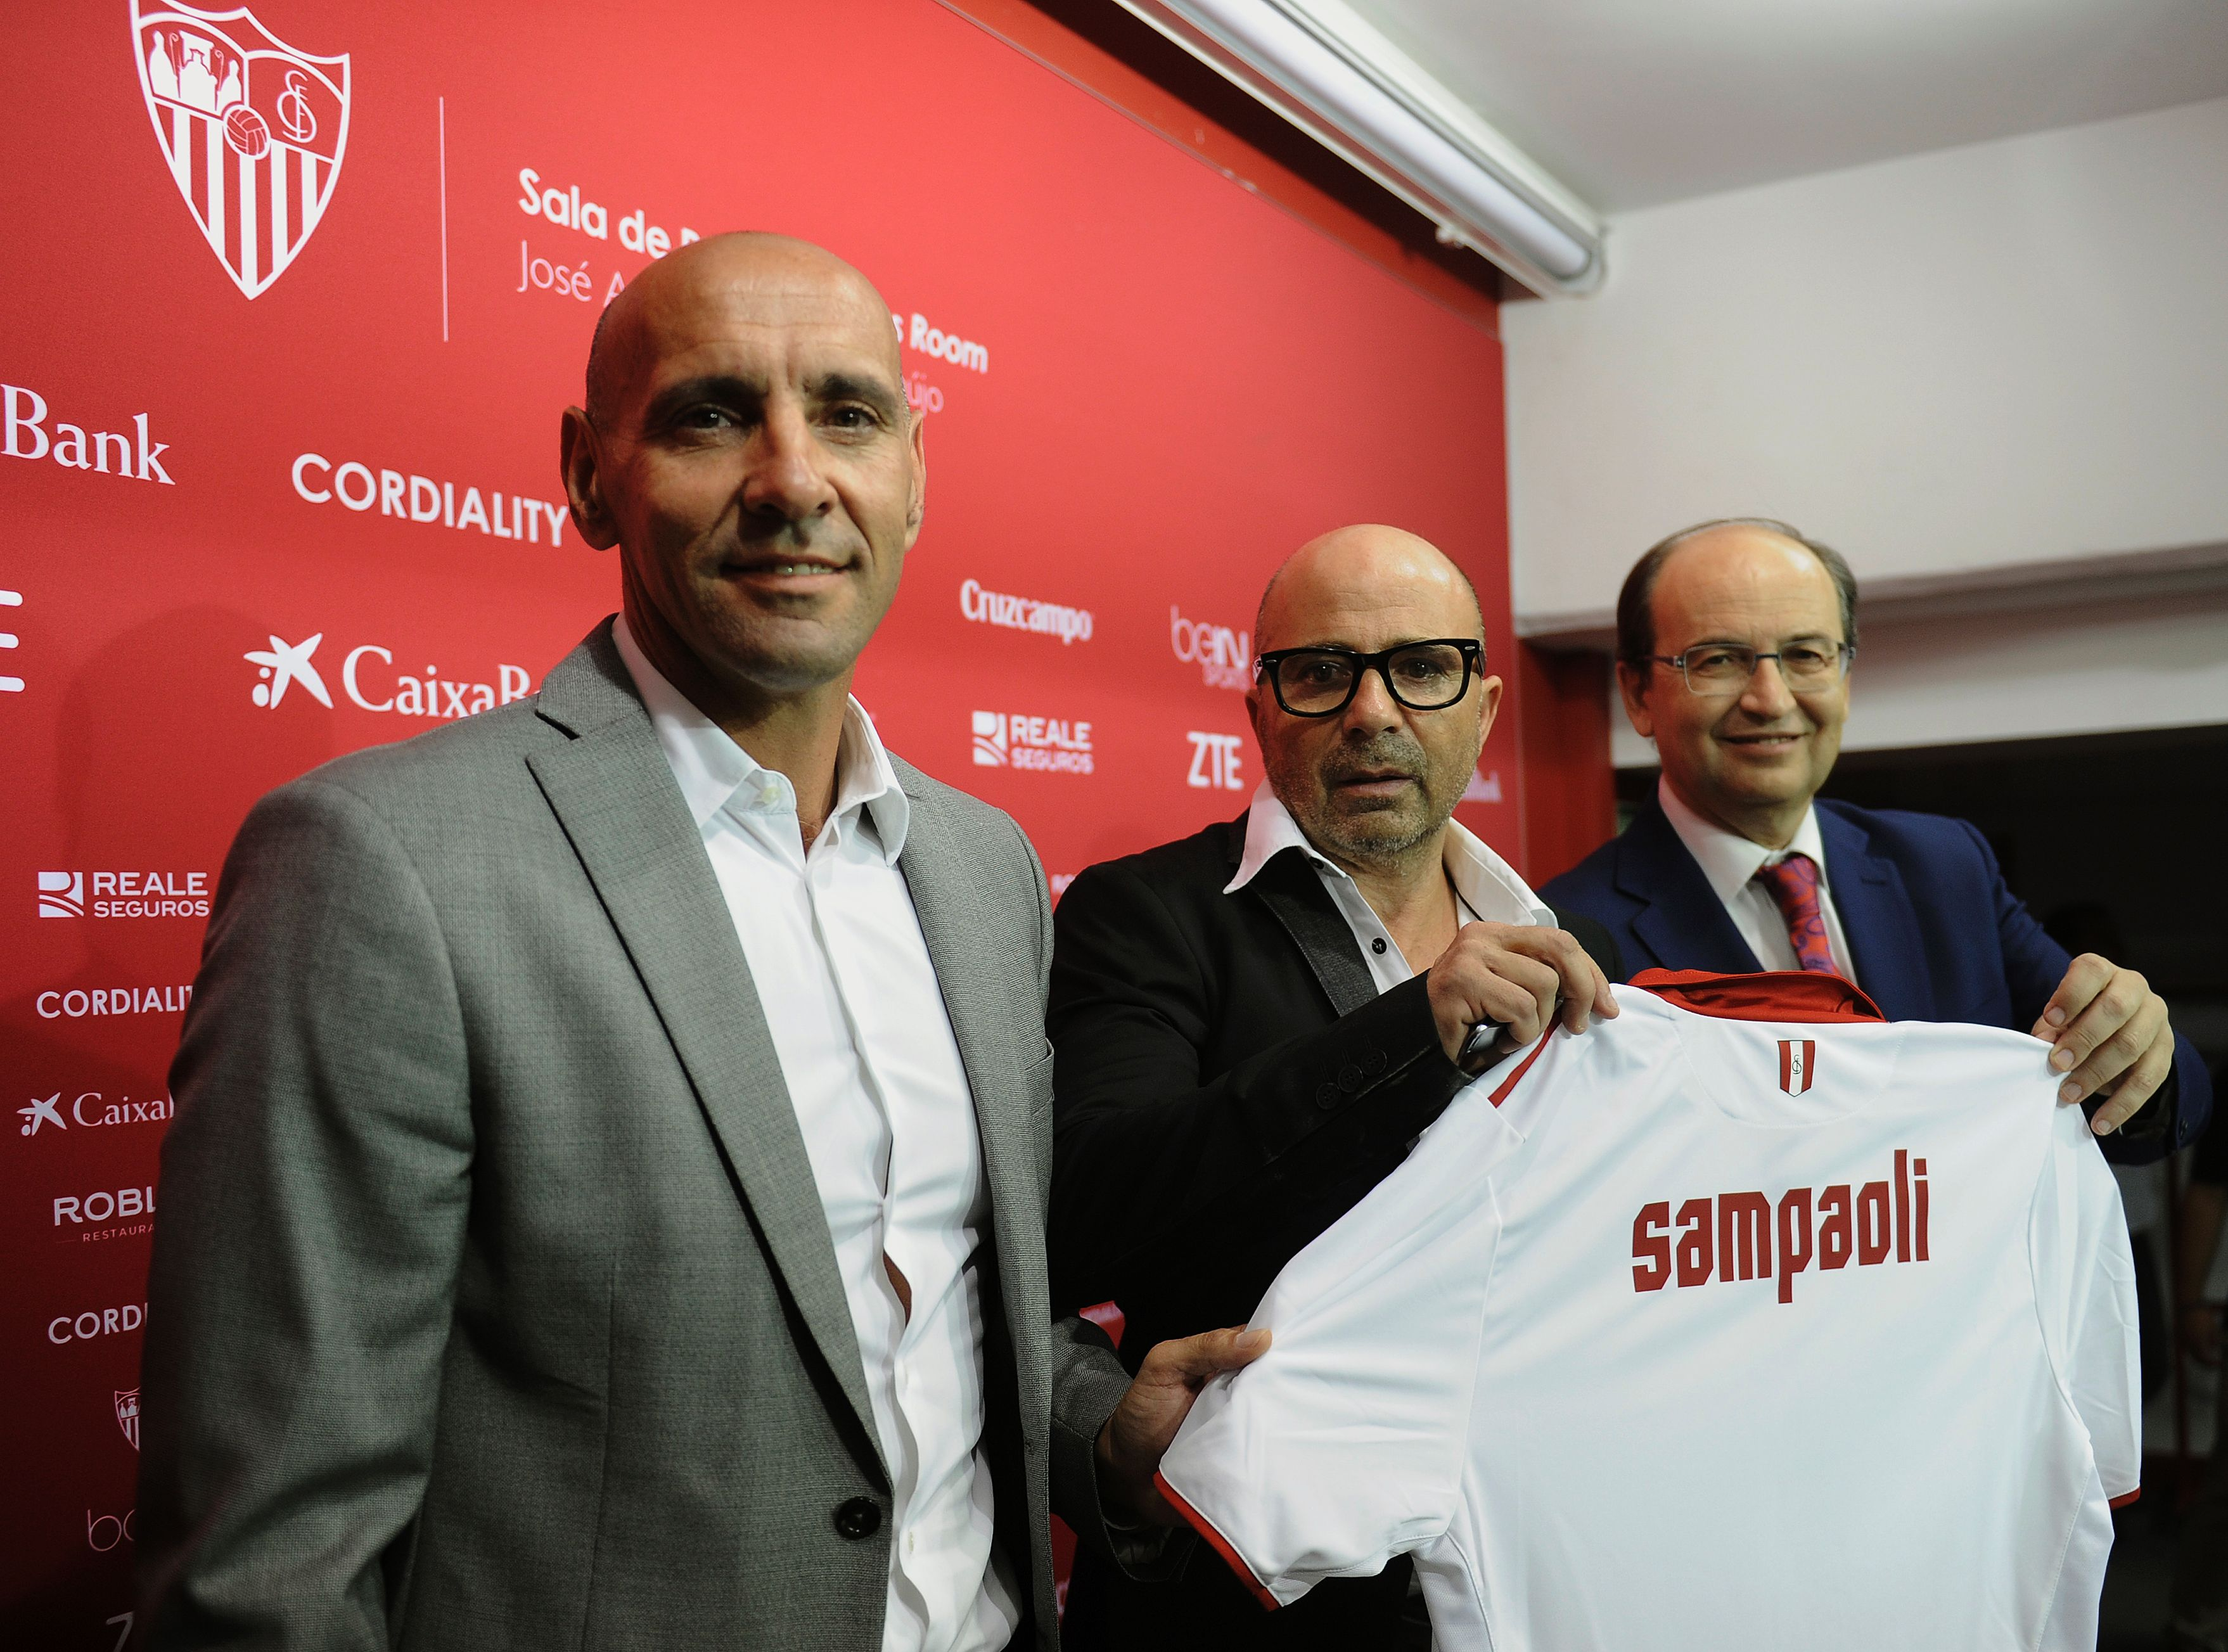 Sevilla's new Argentinian coach Jorge Sampaoli (C) holds a jersey with his name between Sevilla's President Jose Castro (R) and technical director Monchi during his official presentation at the Ramon Sanchez Pizjuan stadium in Sevilla on July 3, 2016. / AFP / CRISTINA QUICLER (Photo credit should read CRISTINA QUICLER/AFP/Getty Images)